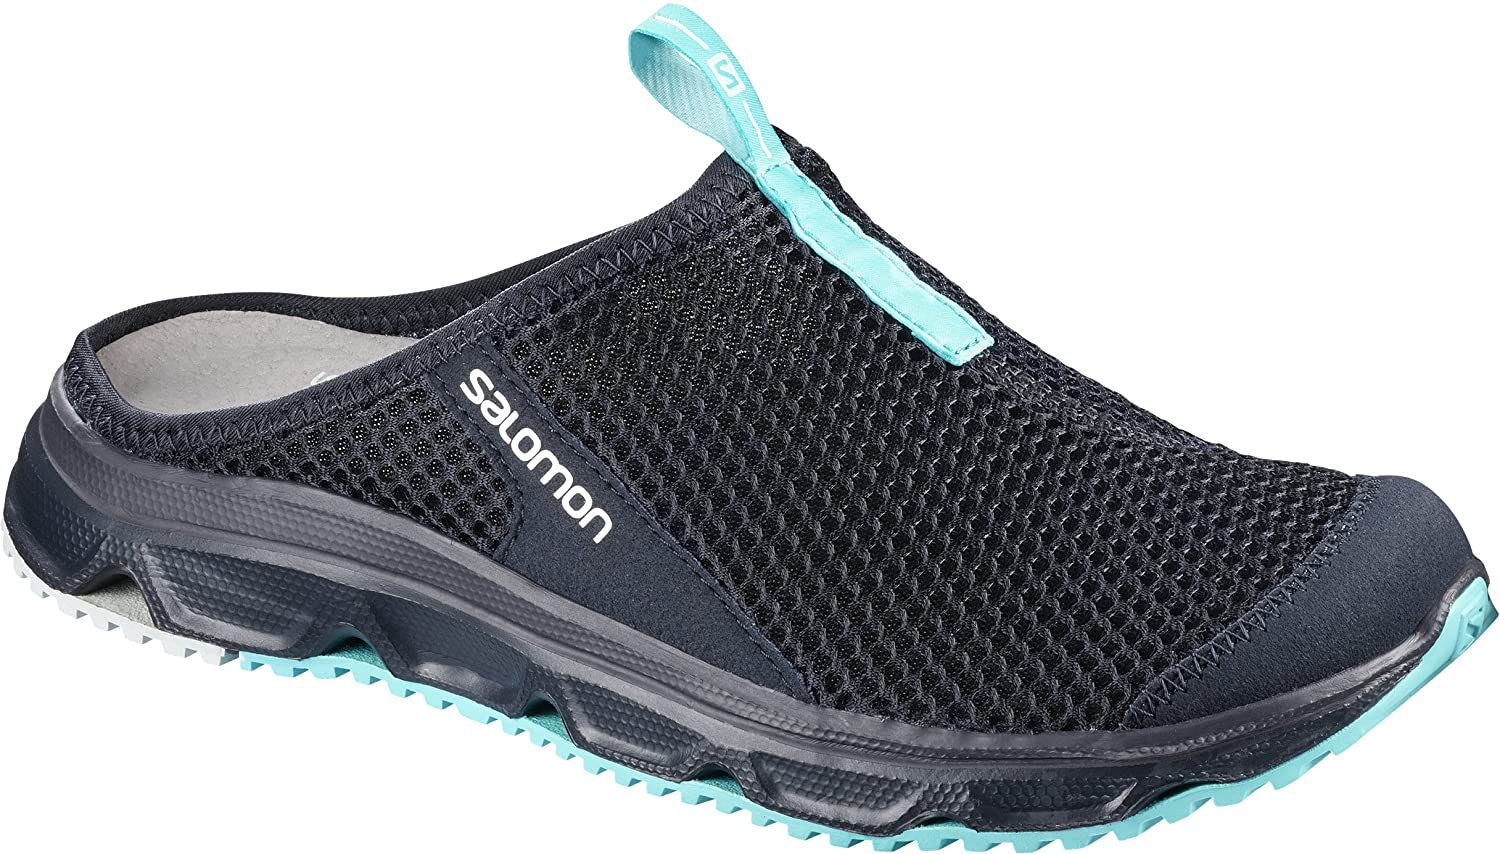 Salomon Damen RX Slide 3, Synthetik/Textil